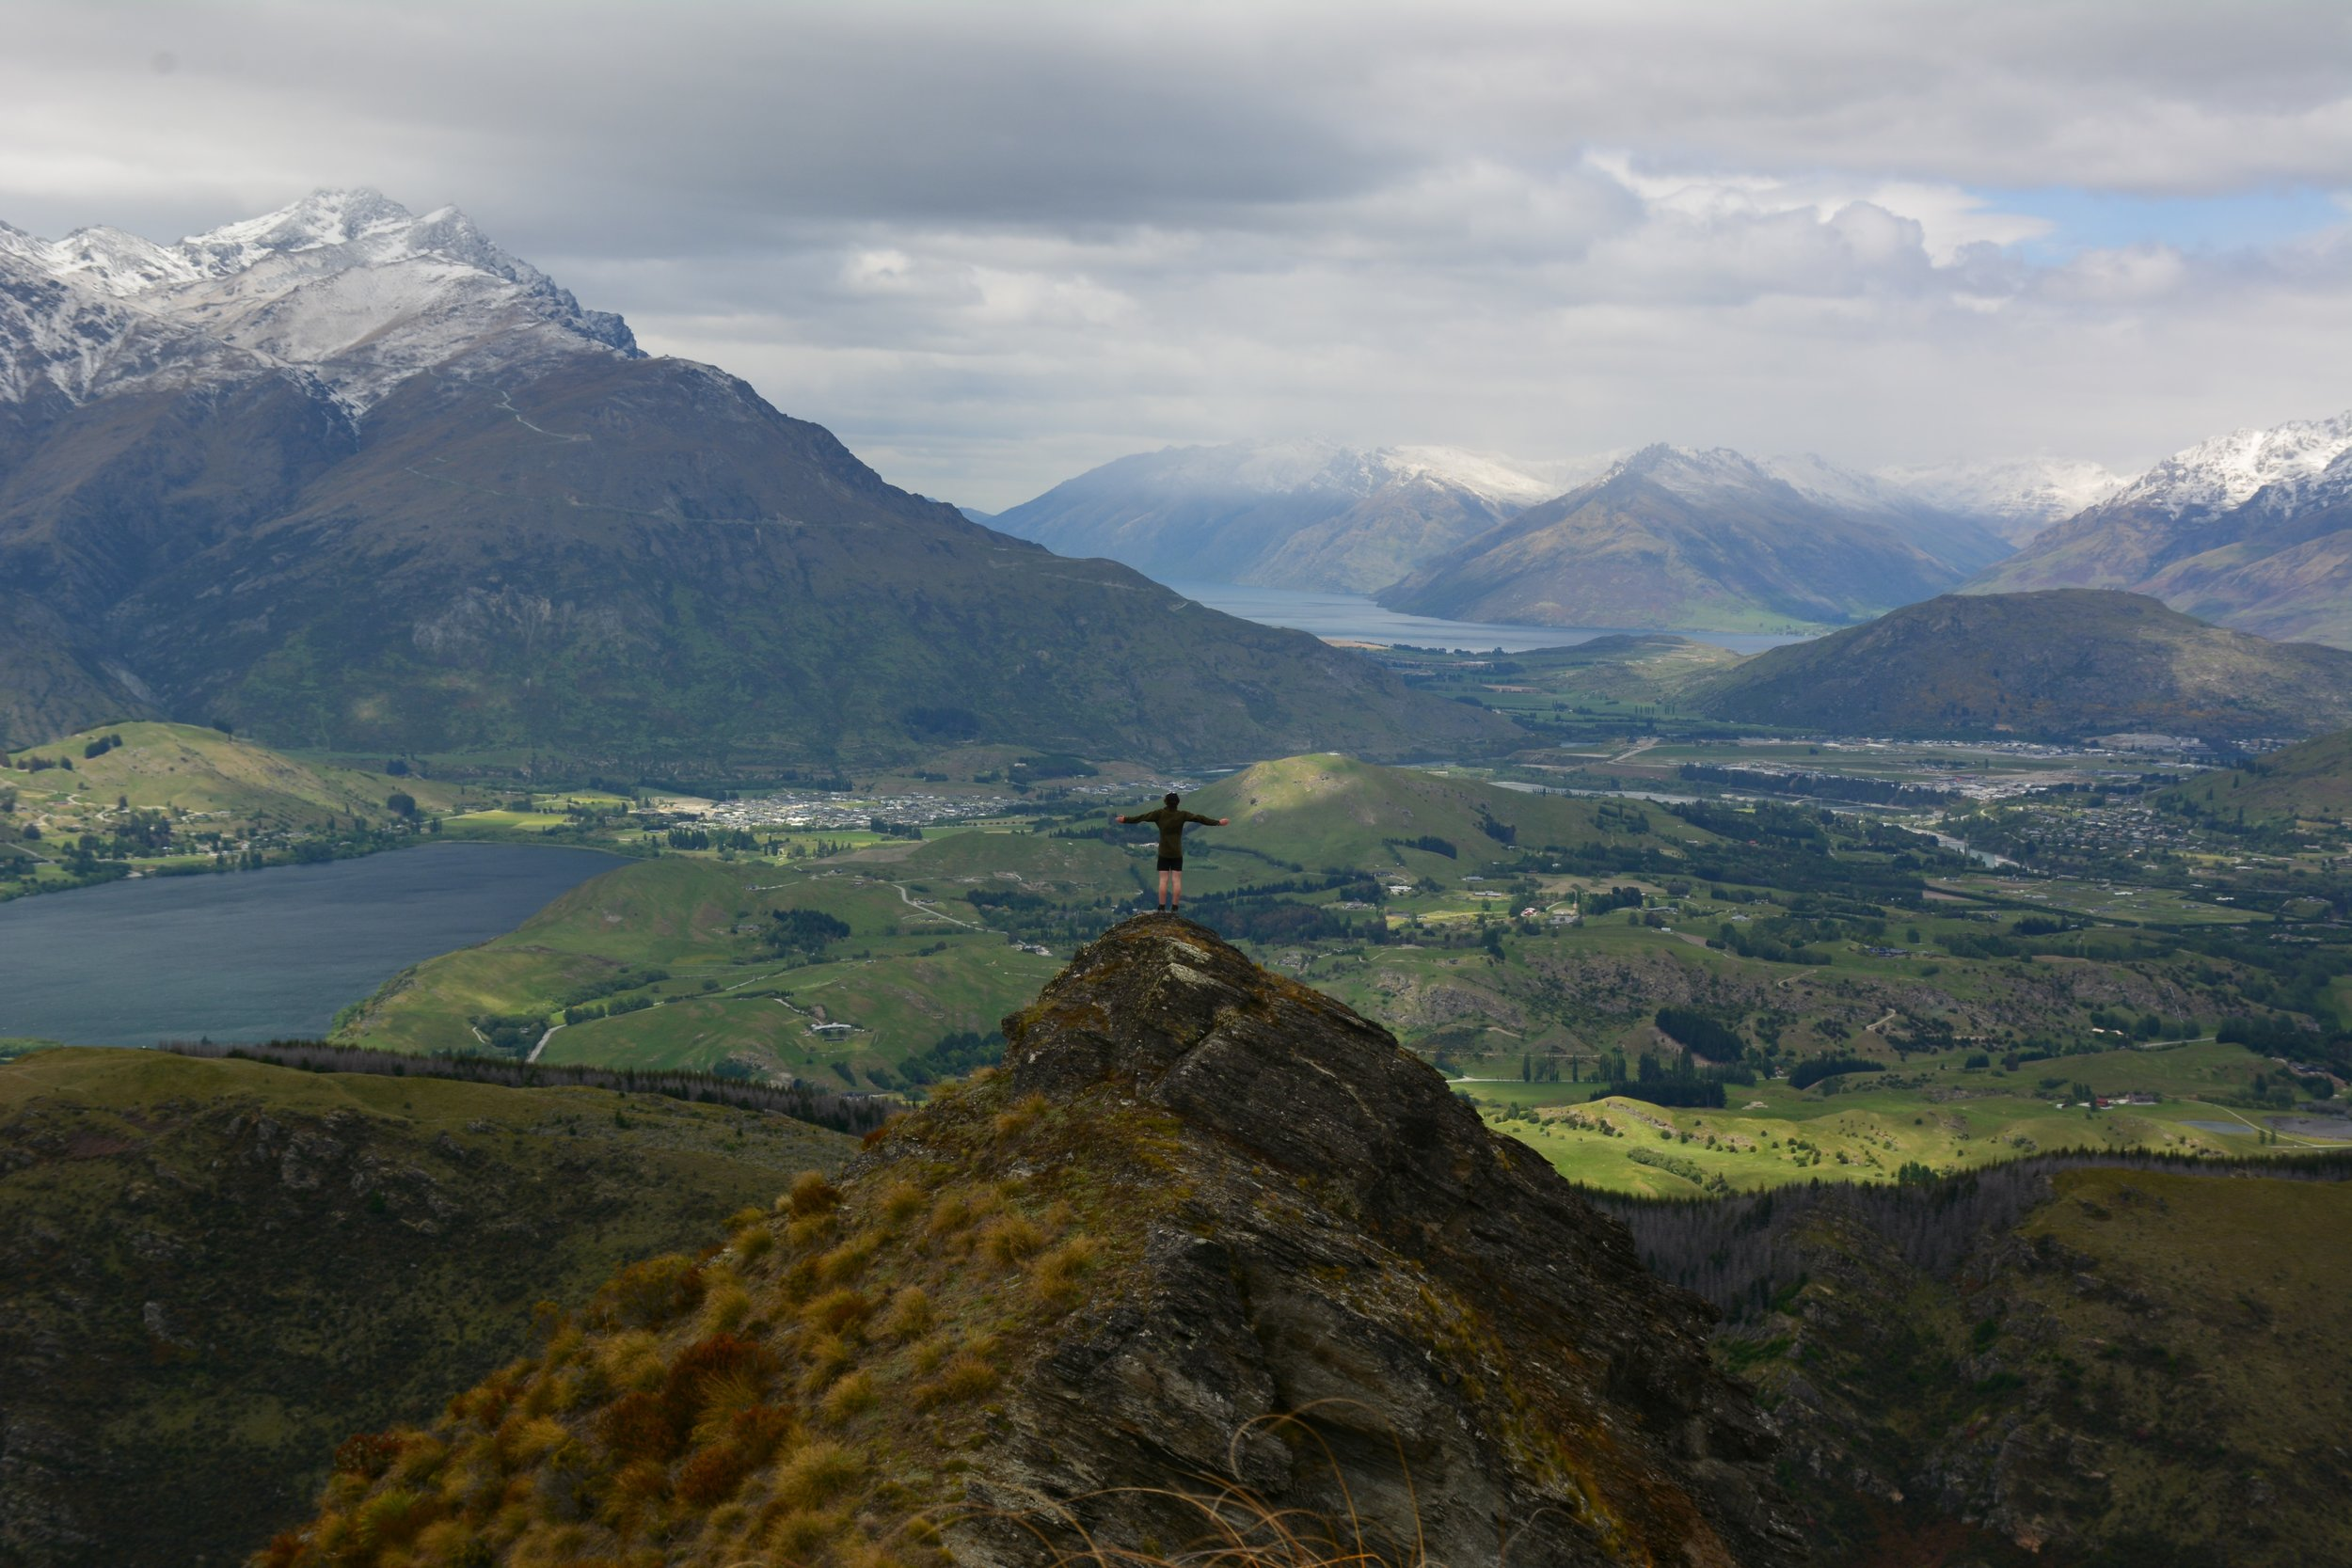 Brow Peak near Arrowtown